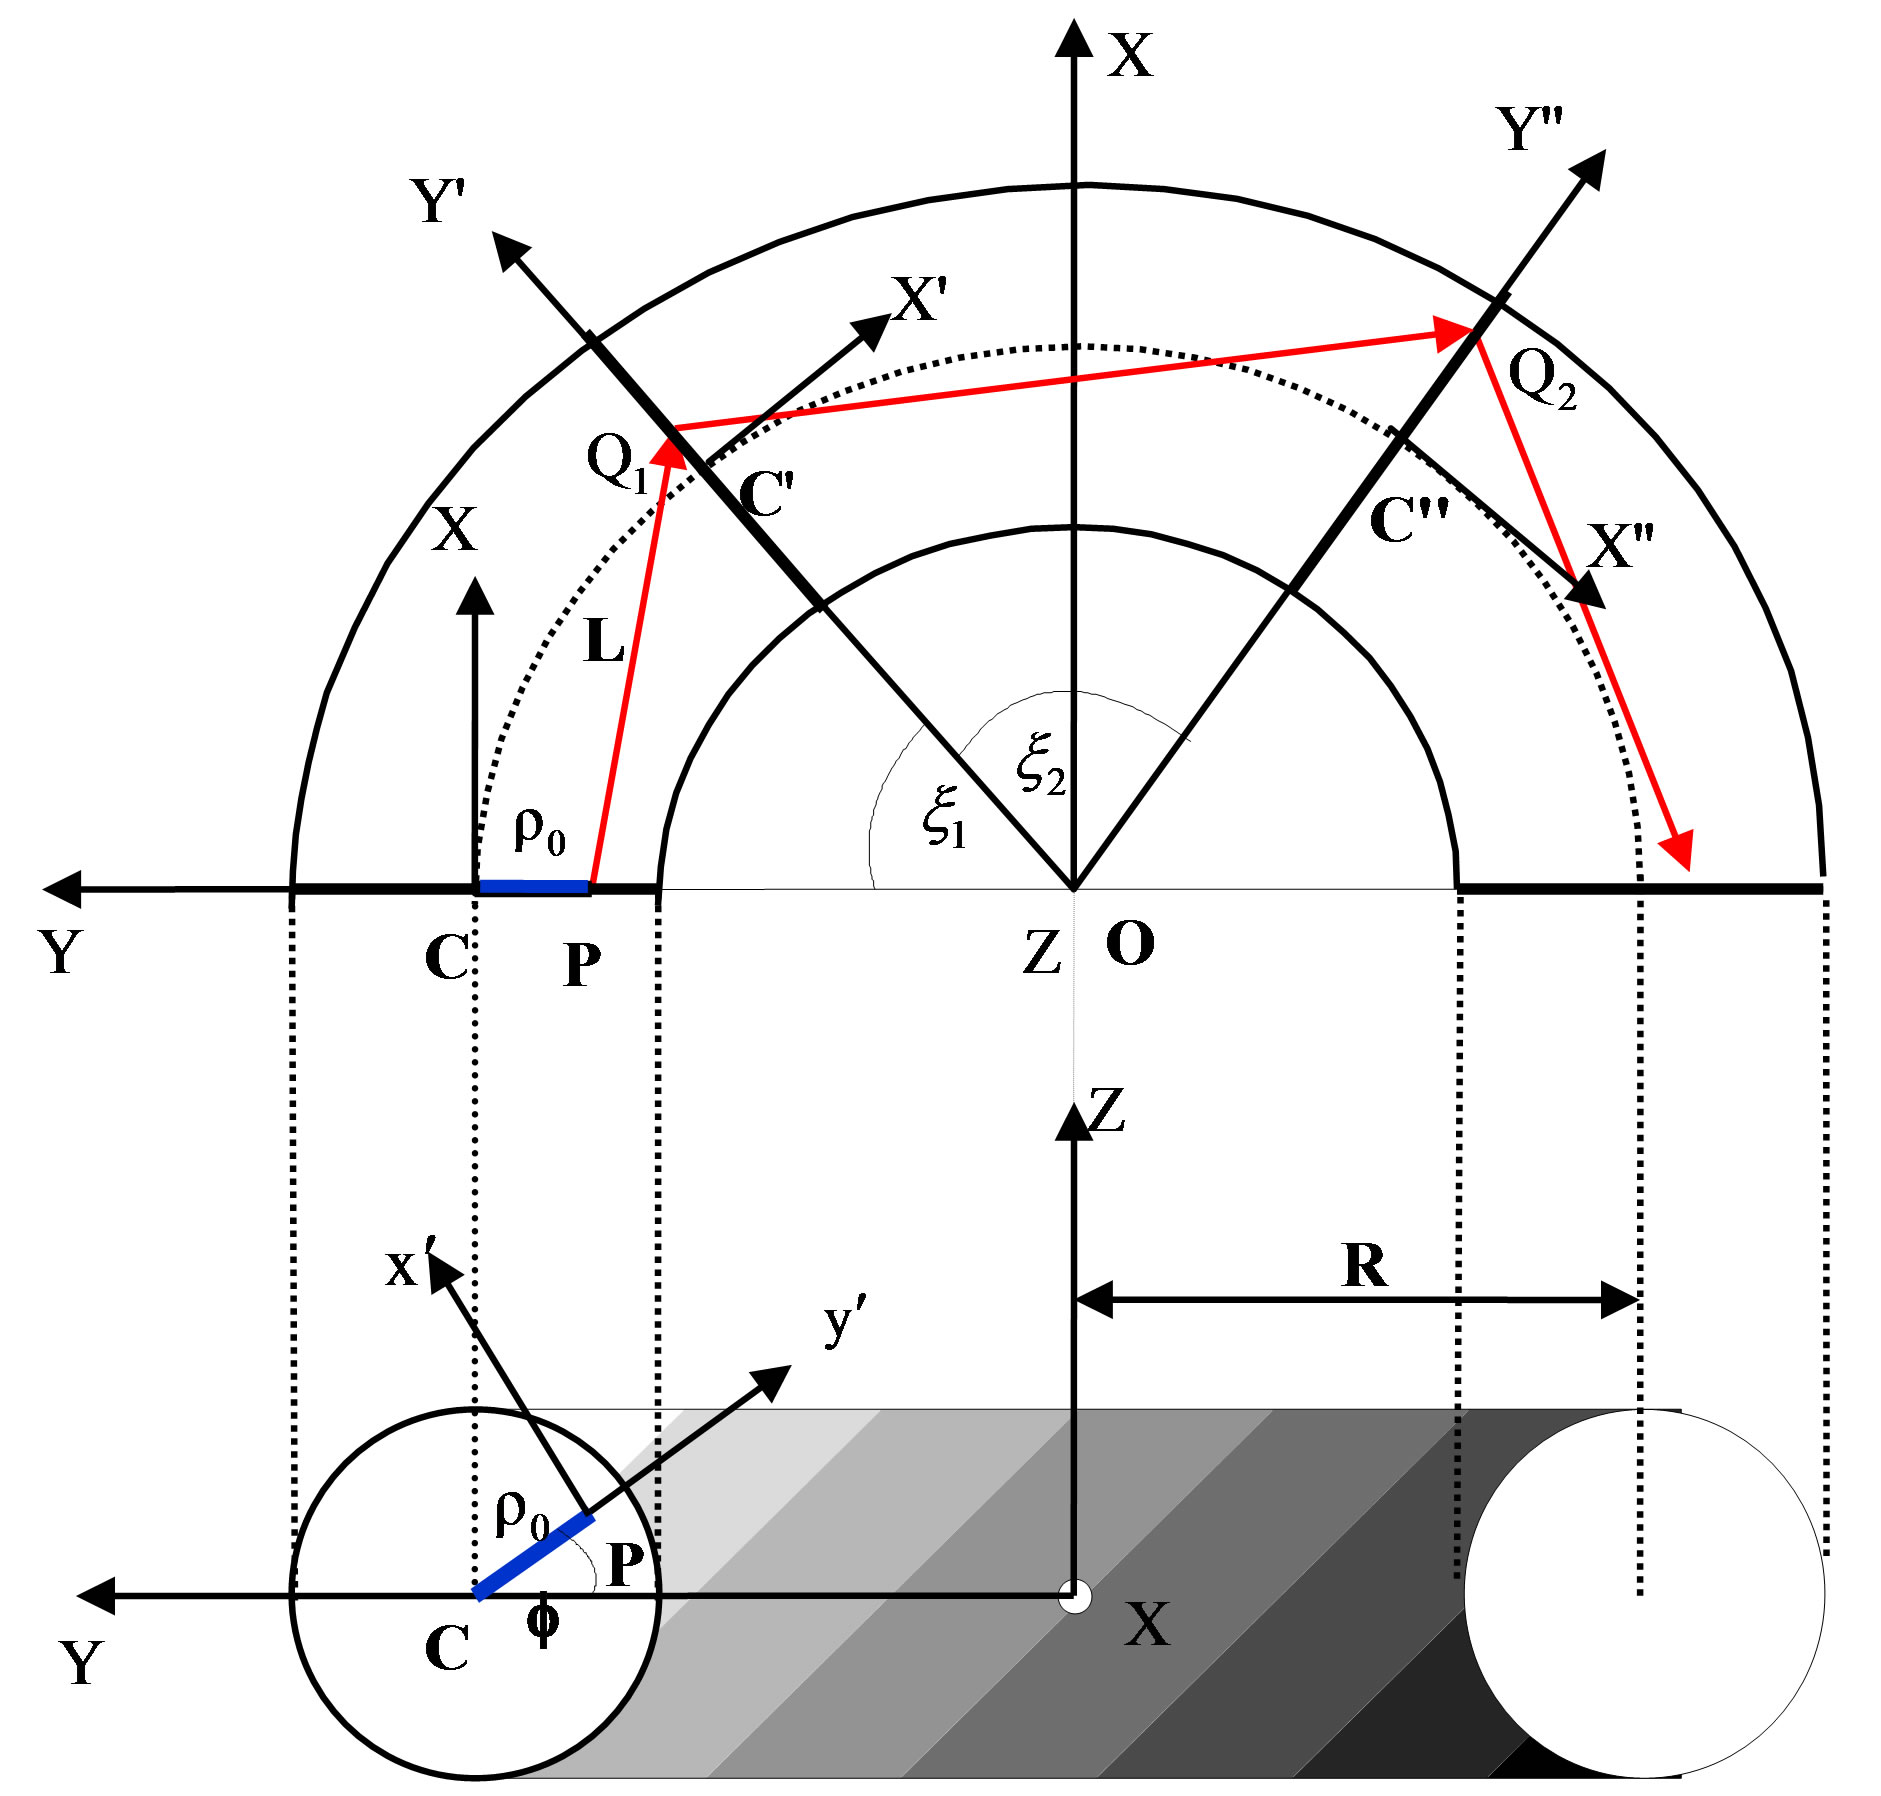 Flexible Optical Waveguide Bent Loss Attenuation Effects Analysis Schematic Diagram Of Fiber Figure 3 Presentation A Section With The Curvature Following An Arc Having Radius R